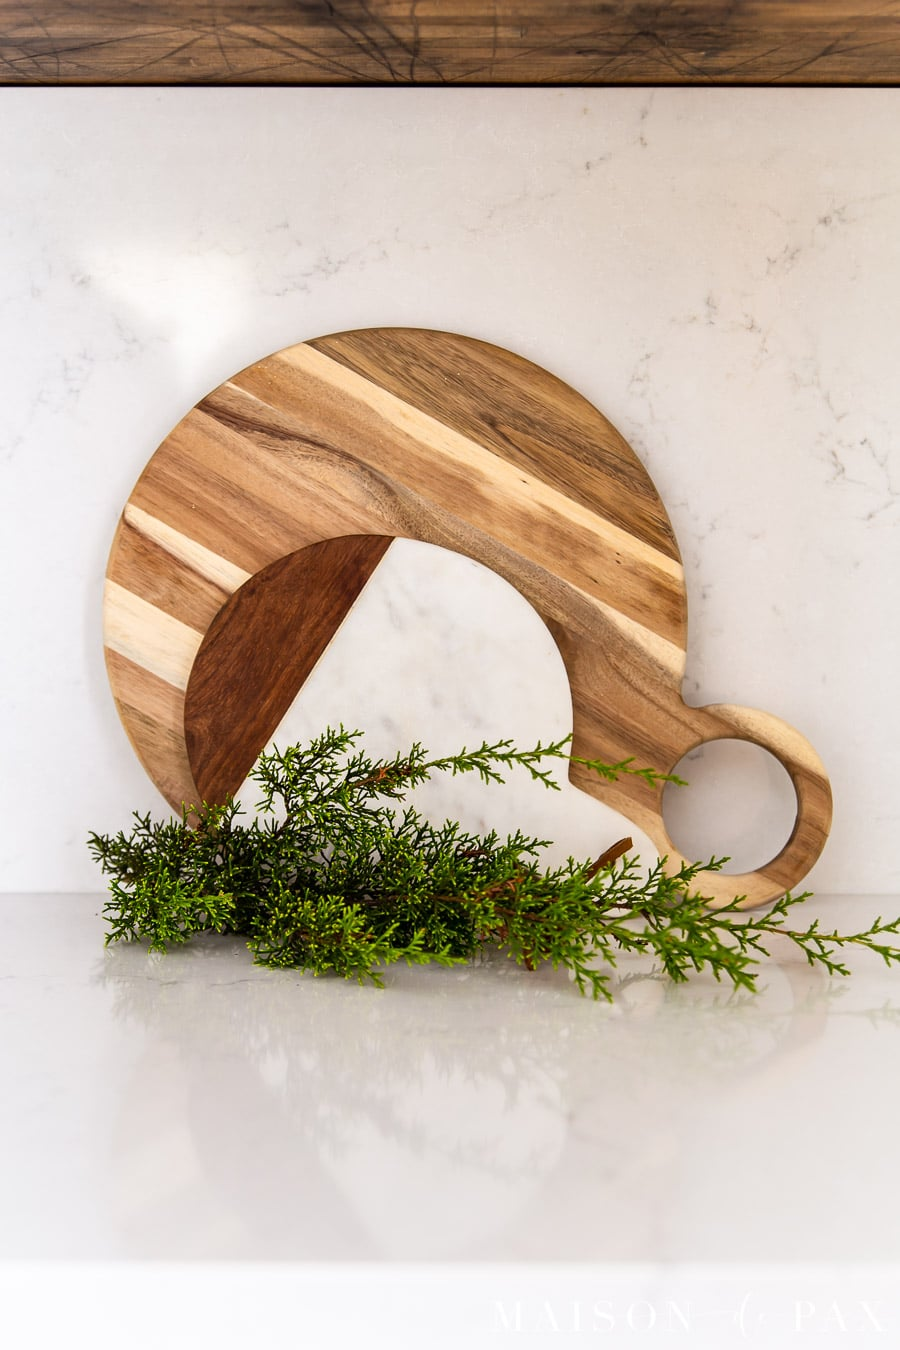 marble and wood cutting boards with cedar clippings on quartz counters | Maison de Pax